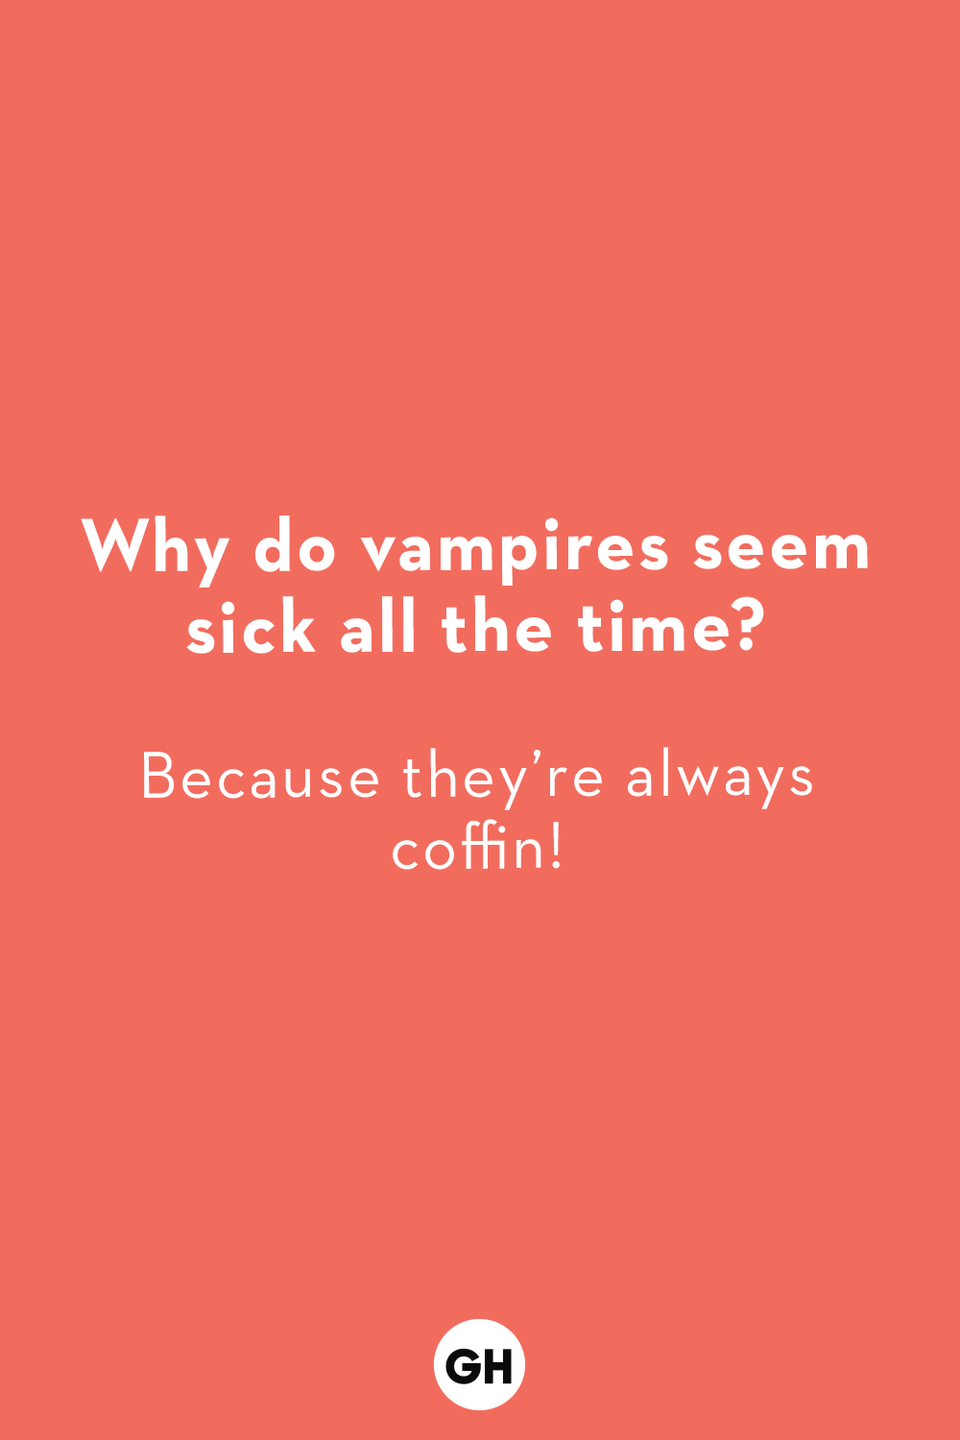 <p>Because they're always coffin!</p>